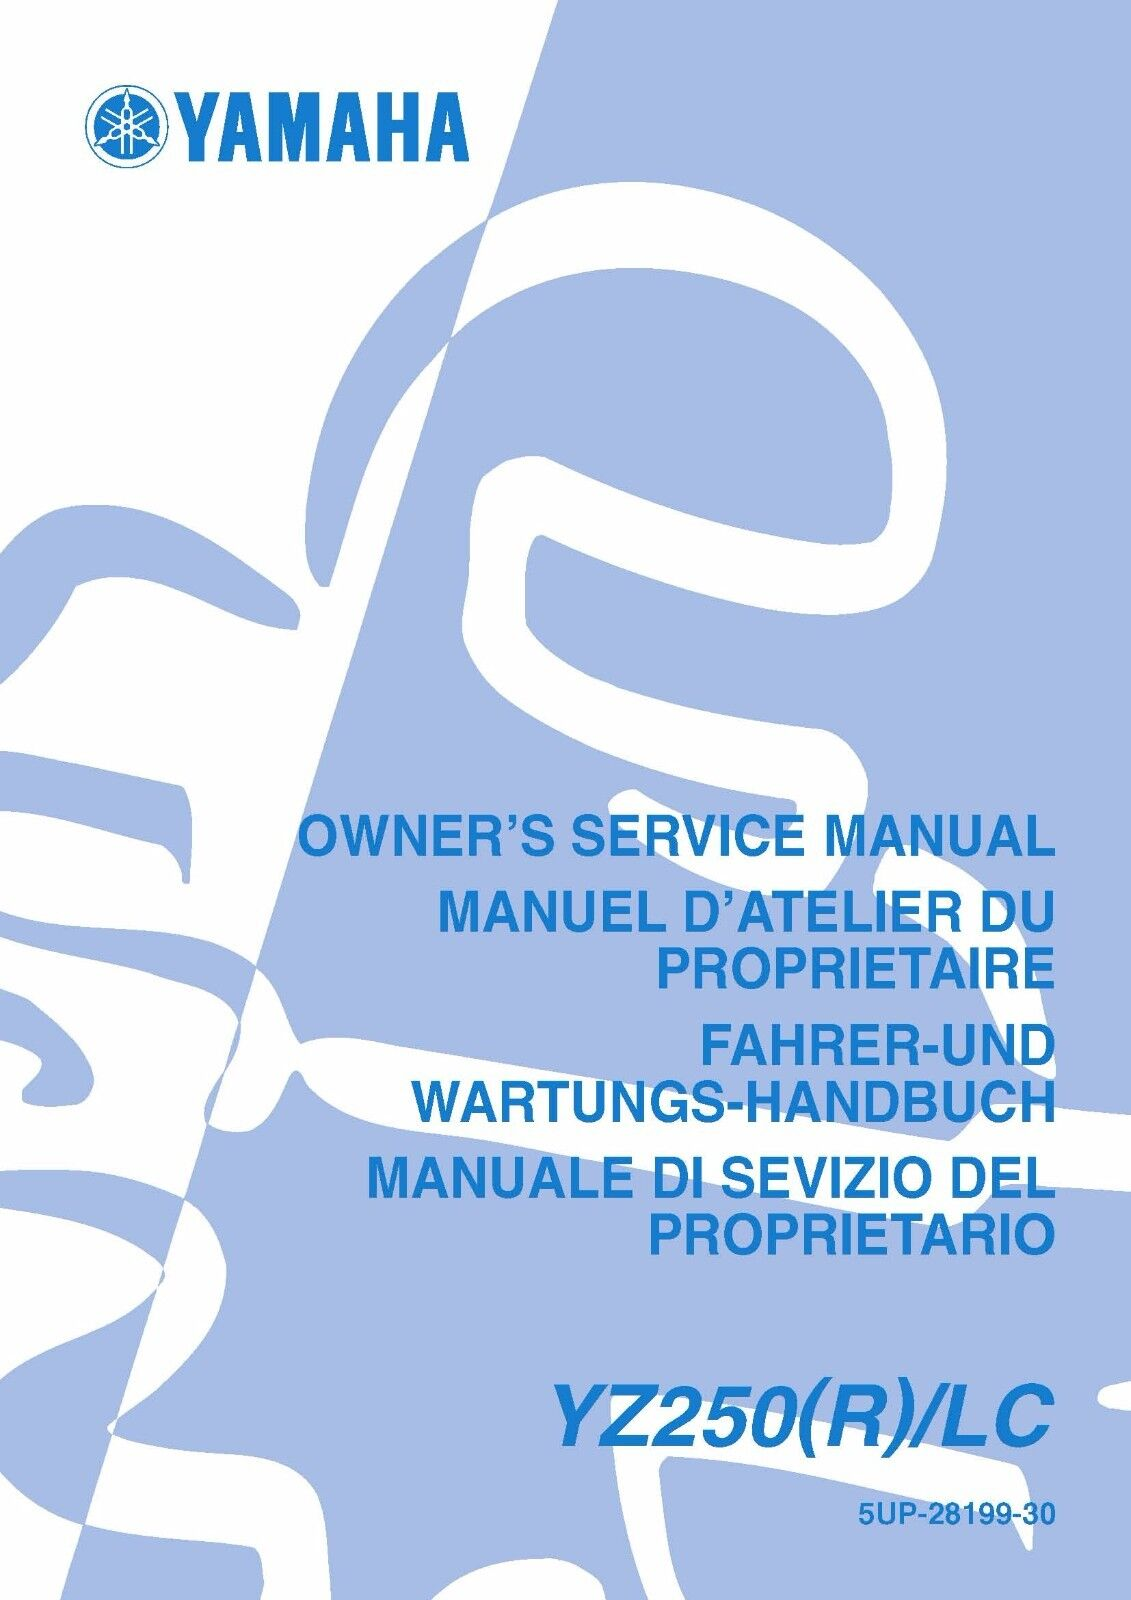 Yamaha service workshop manual 2003 YZ250 (R)/LC 1 of 12FREE Shipping ...